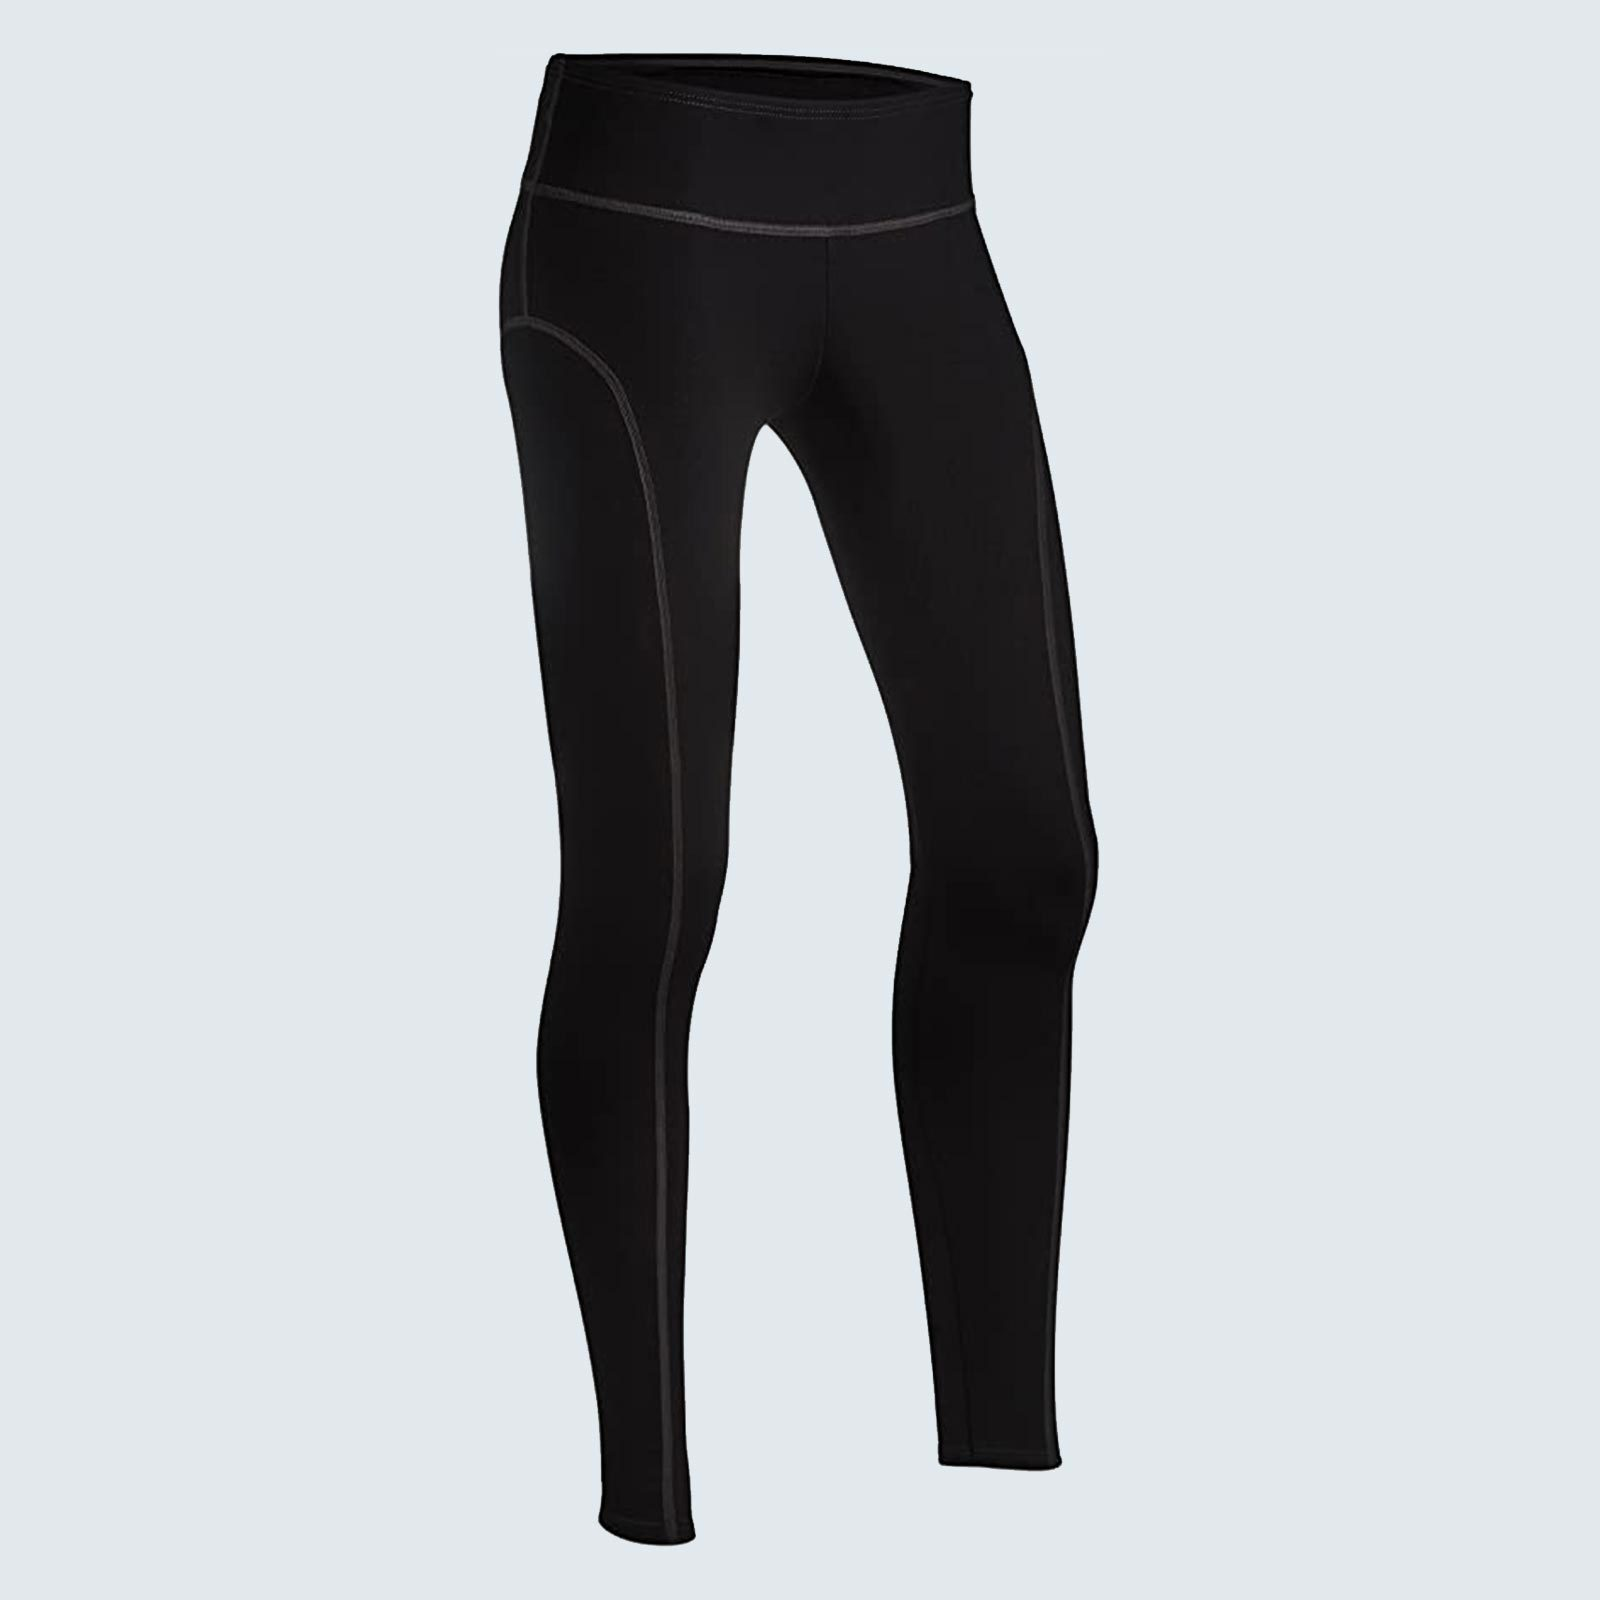 Best base layer leggings: ColdPruf Quest Performance Base Layer Leggings